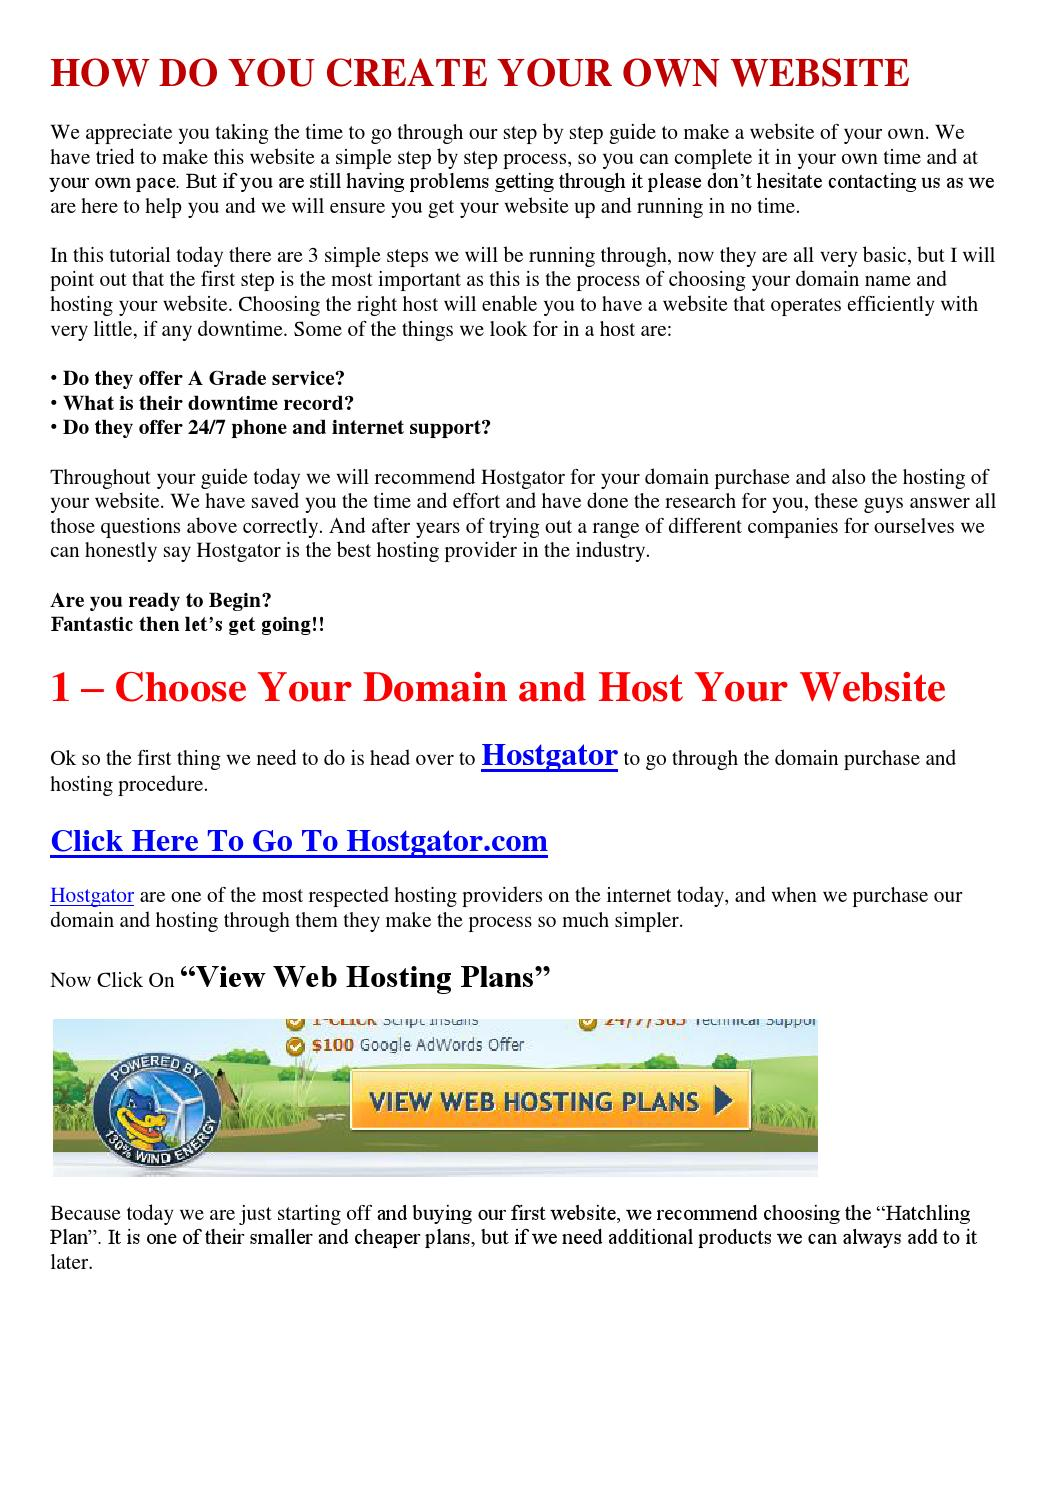 How Do You Create Your Own Website By Nanse Break Issuu